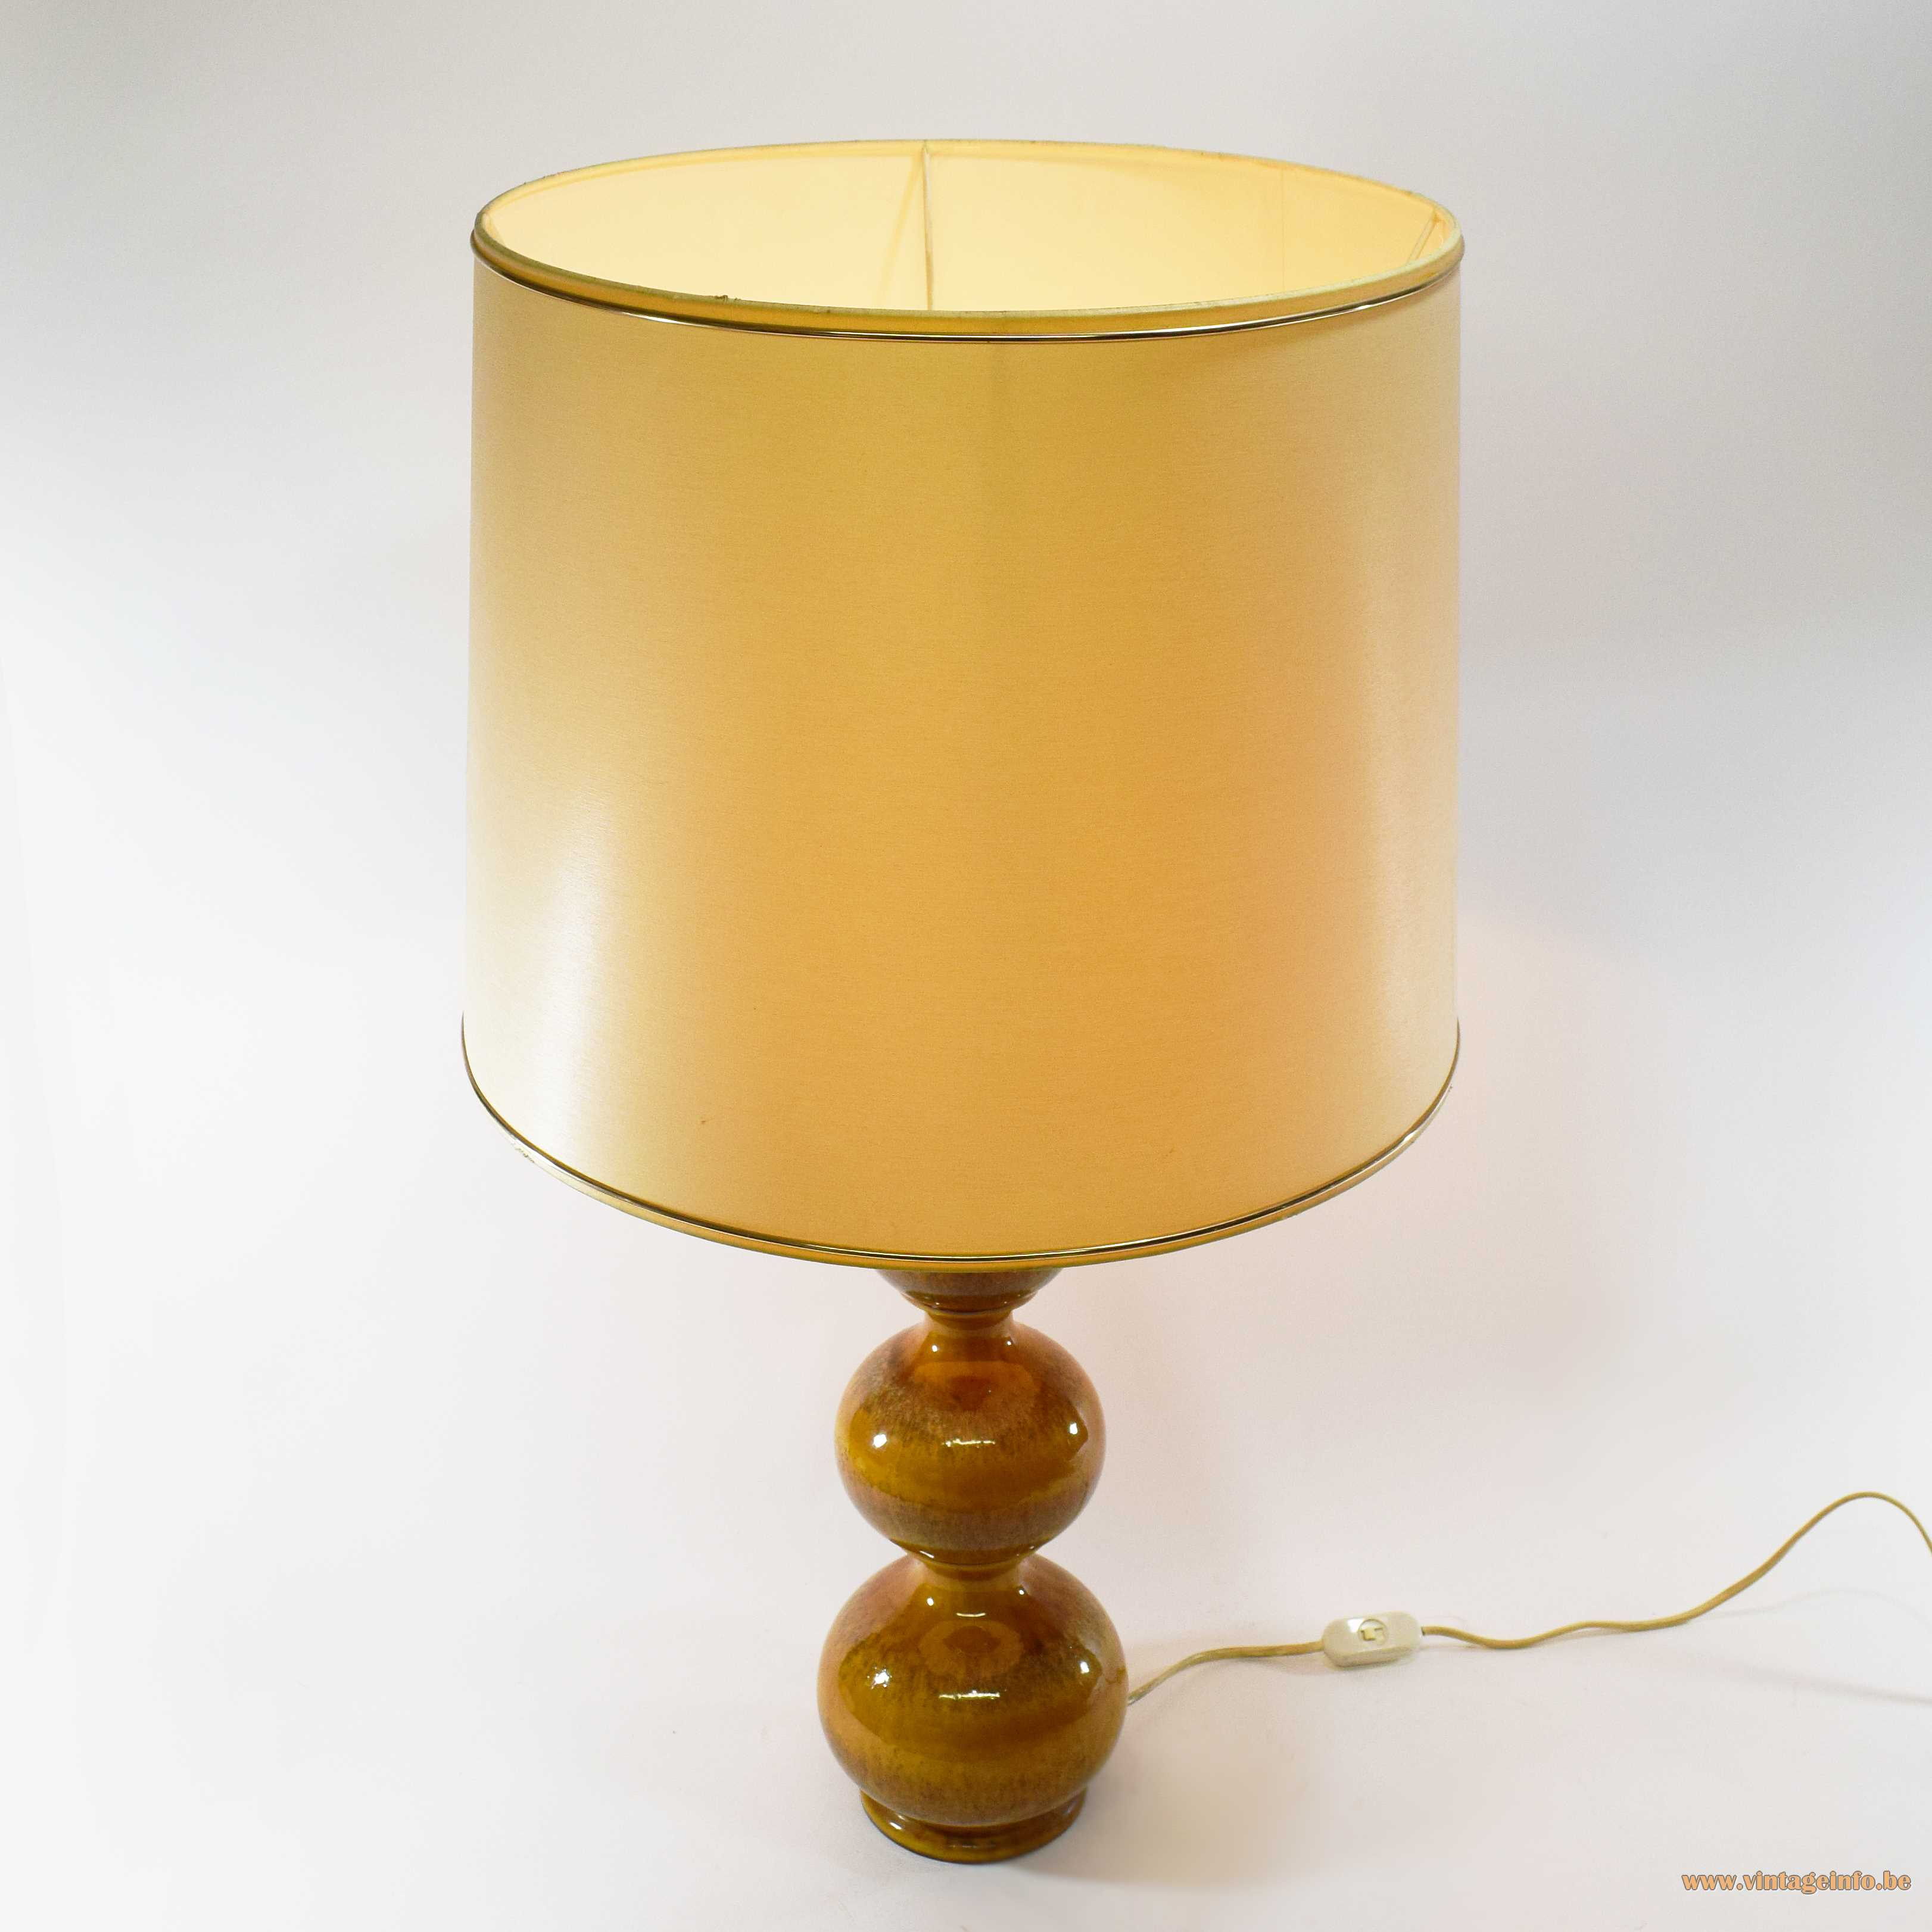 Kaiser Leuchten ceramic 3 globes table lamp ochre glazed 1960s 1970s Mid-Century Modern MCM Germany